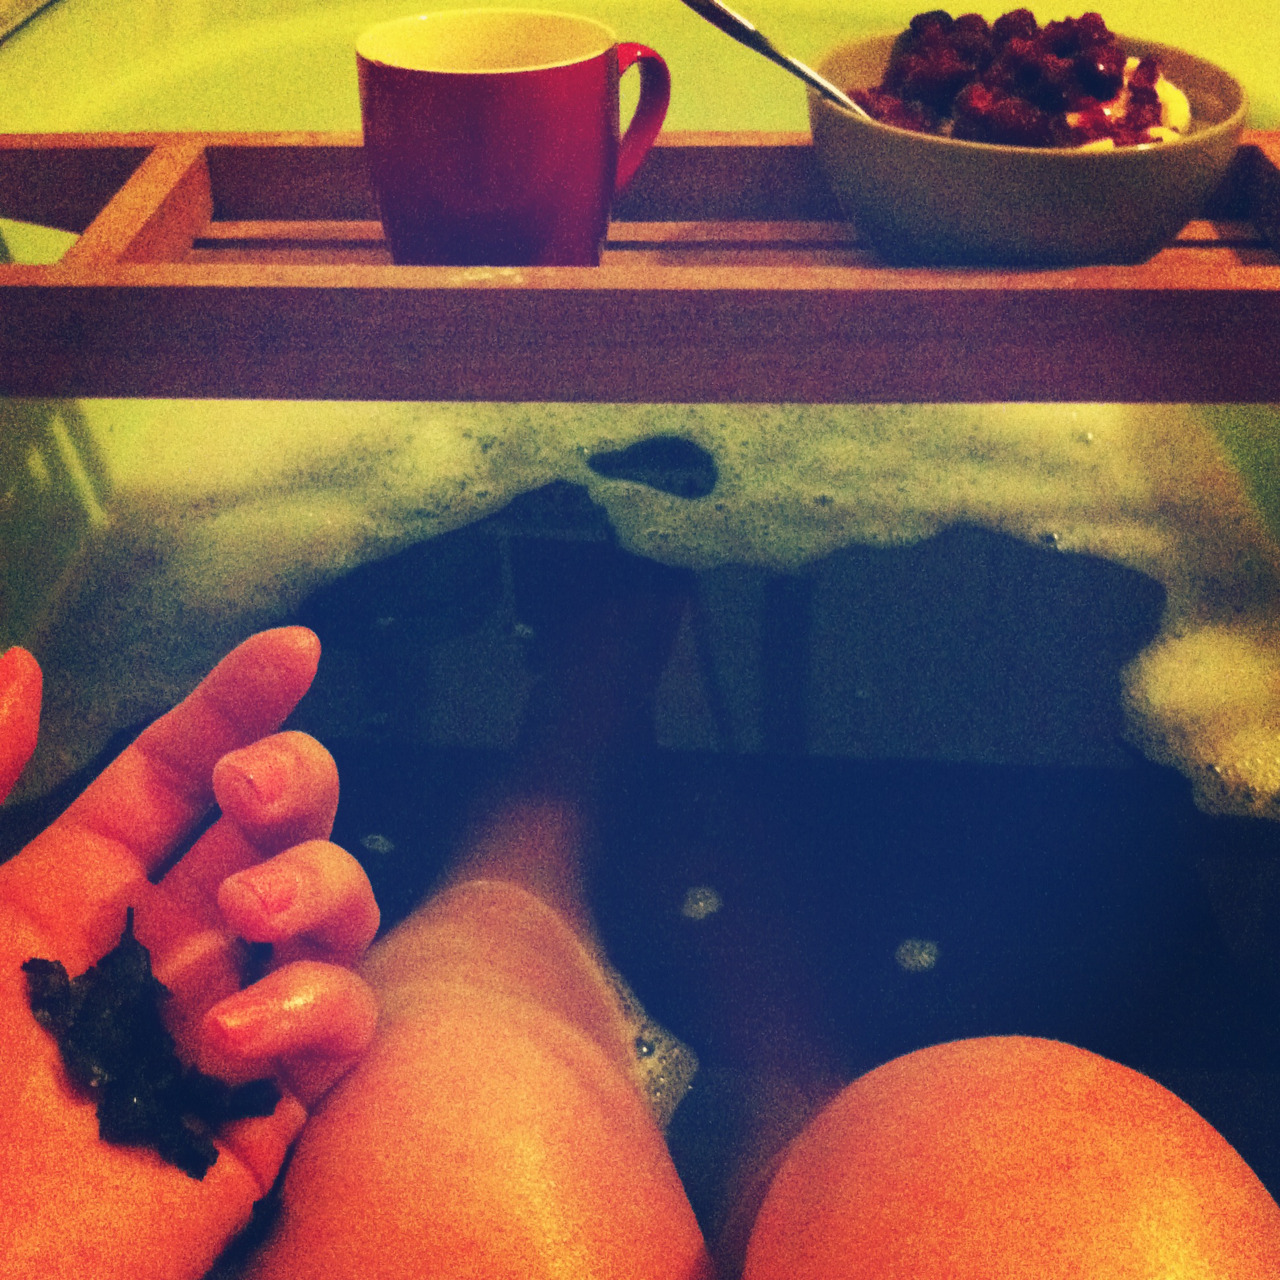 Green-tea bath!